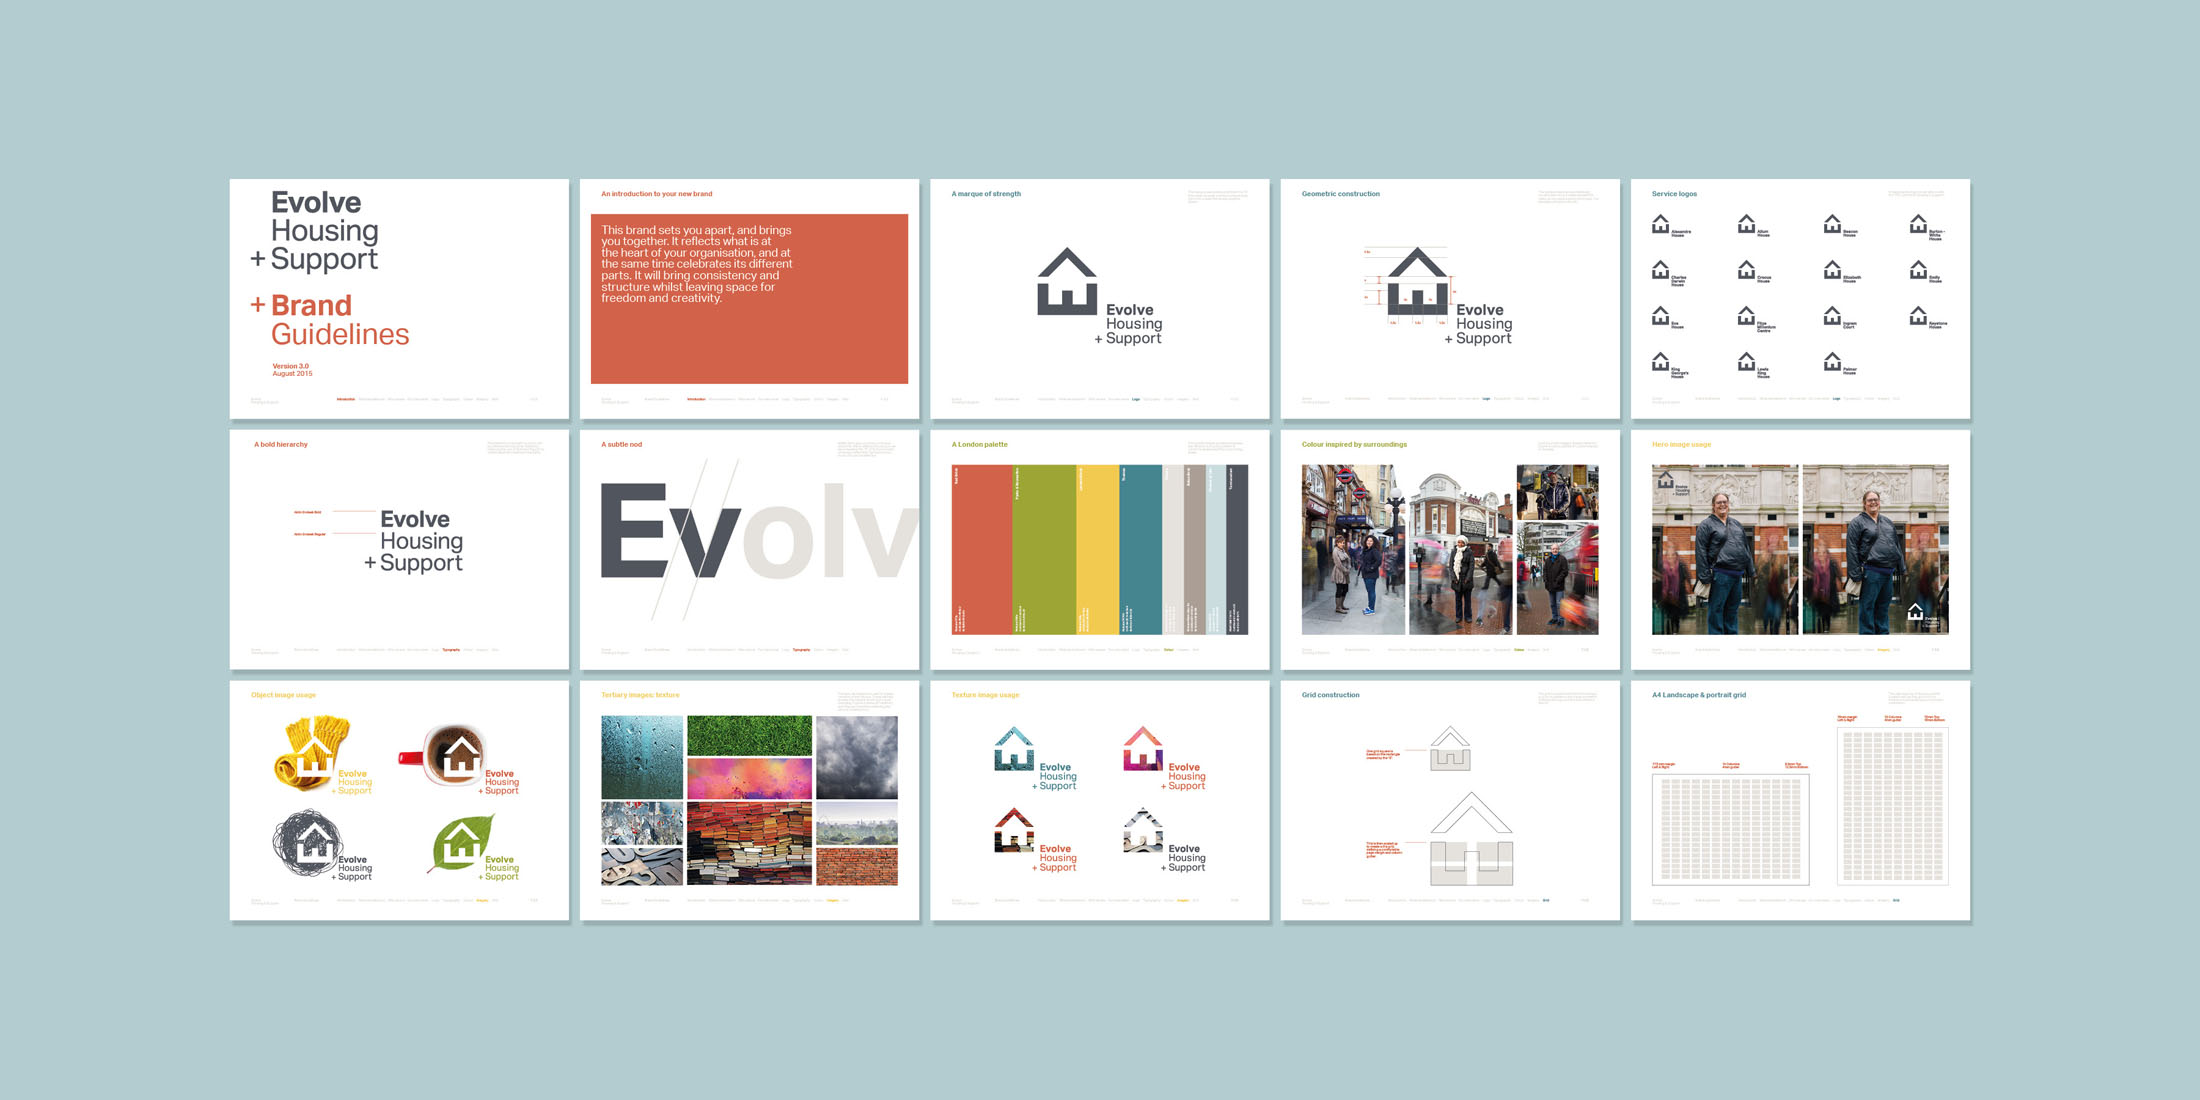 Evolve brand guidelines